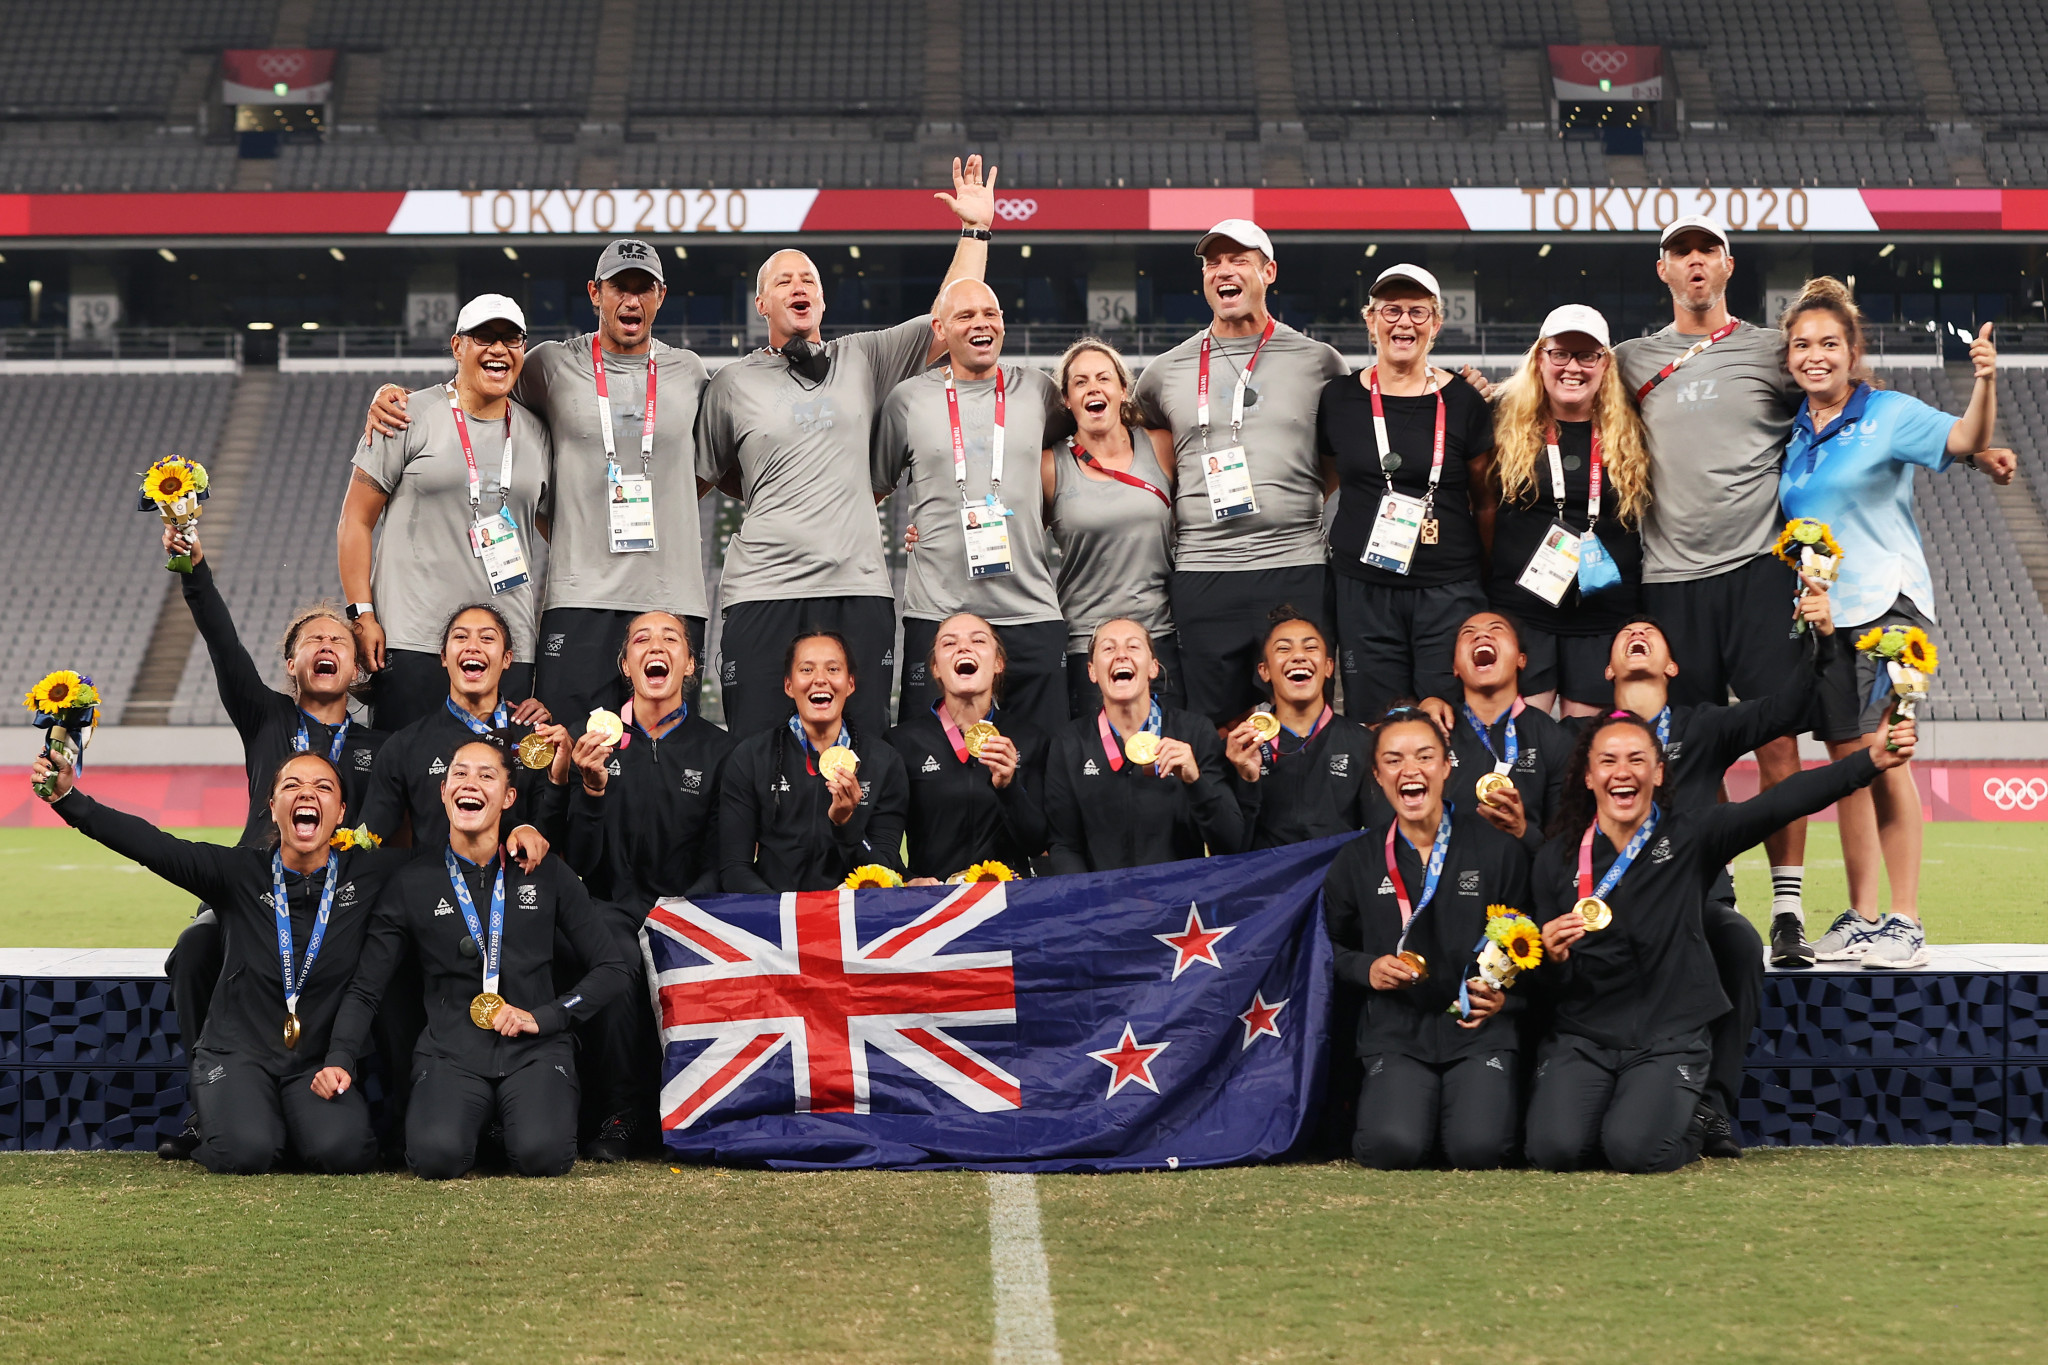 New Zealand bounce back from Rio heartbreak with women's rugby sevens gold in Tokyo